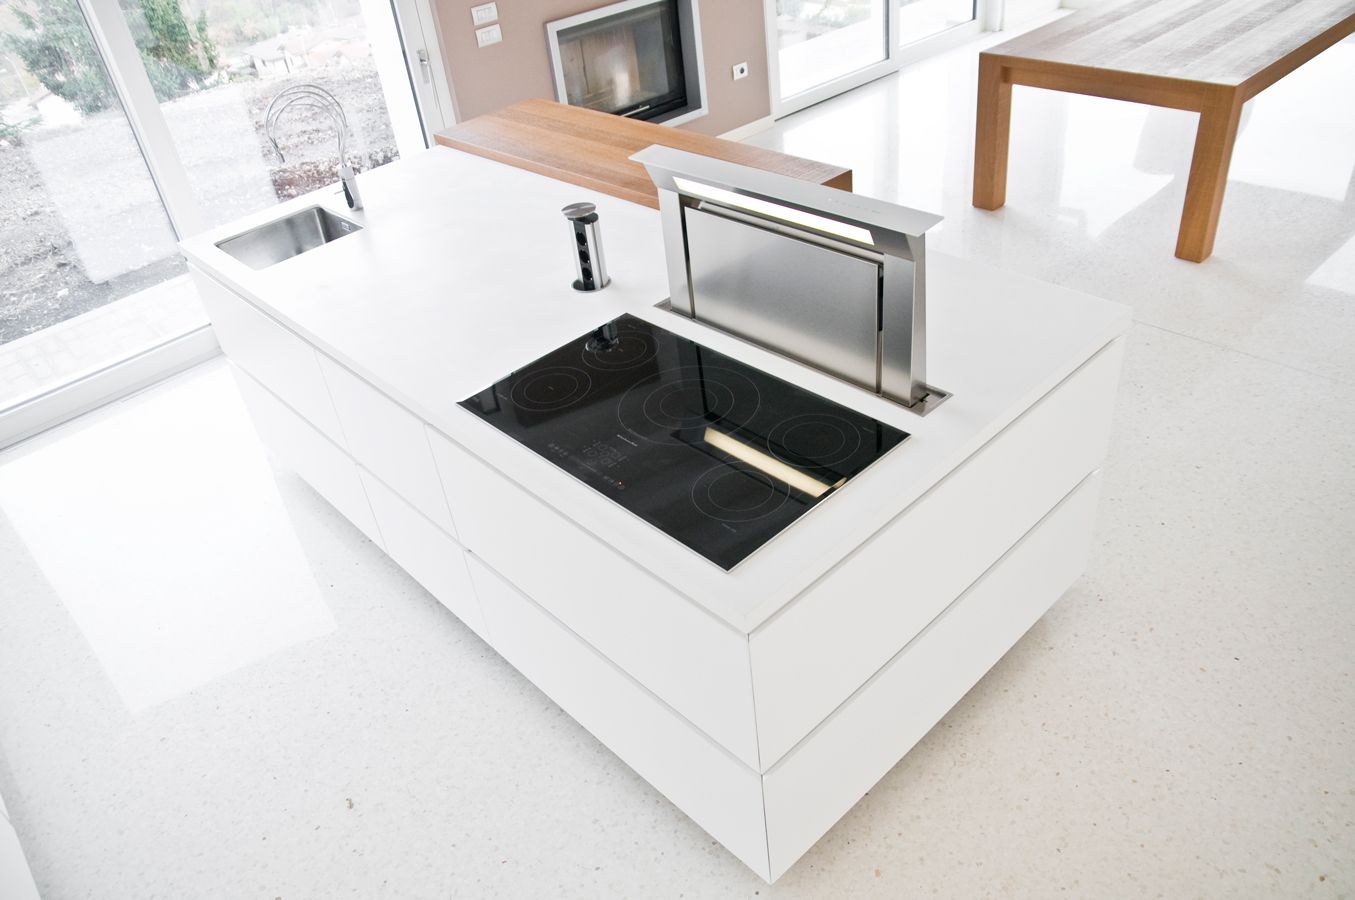 the extractor fan | Kitchen | Pinterest | Extractor fans, Corian ...